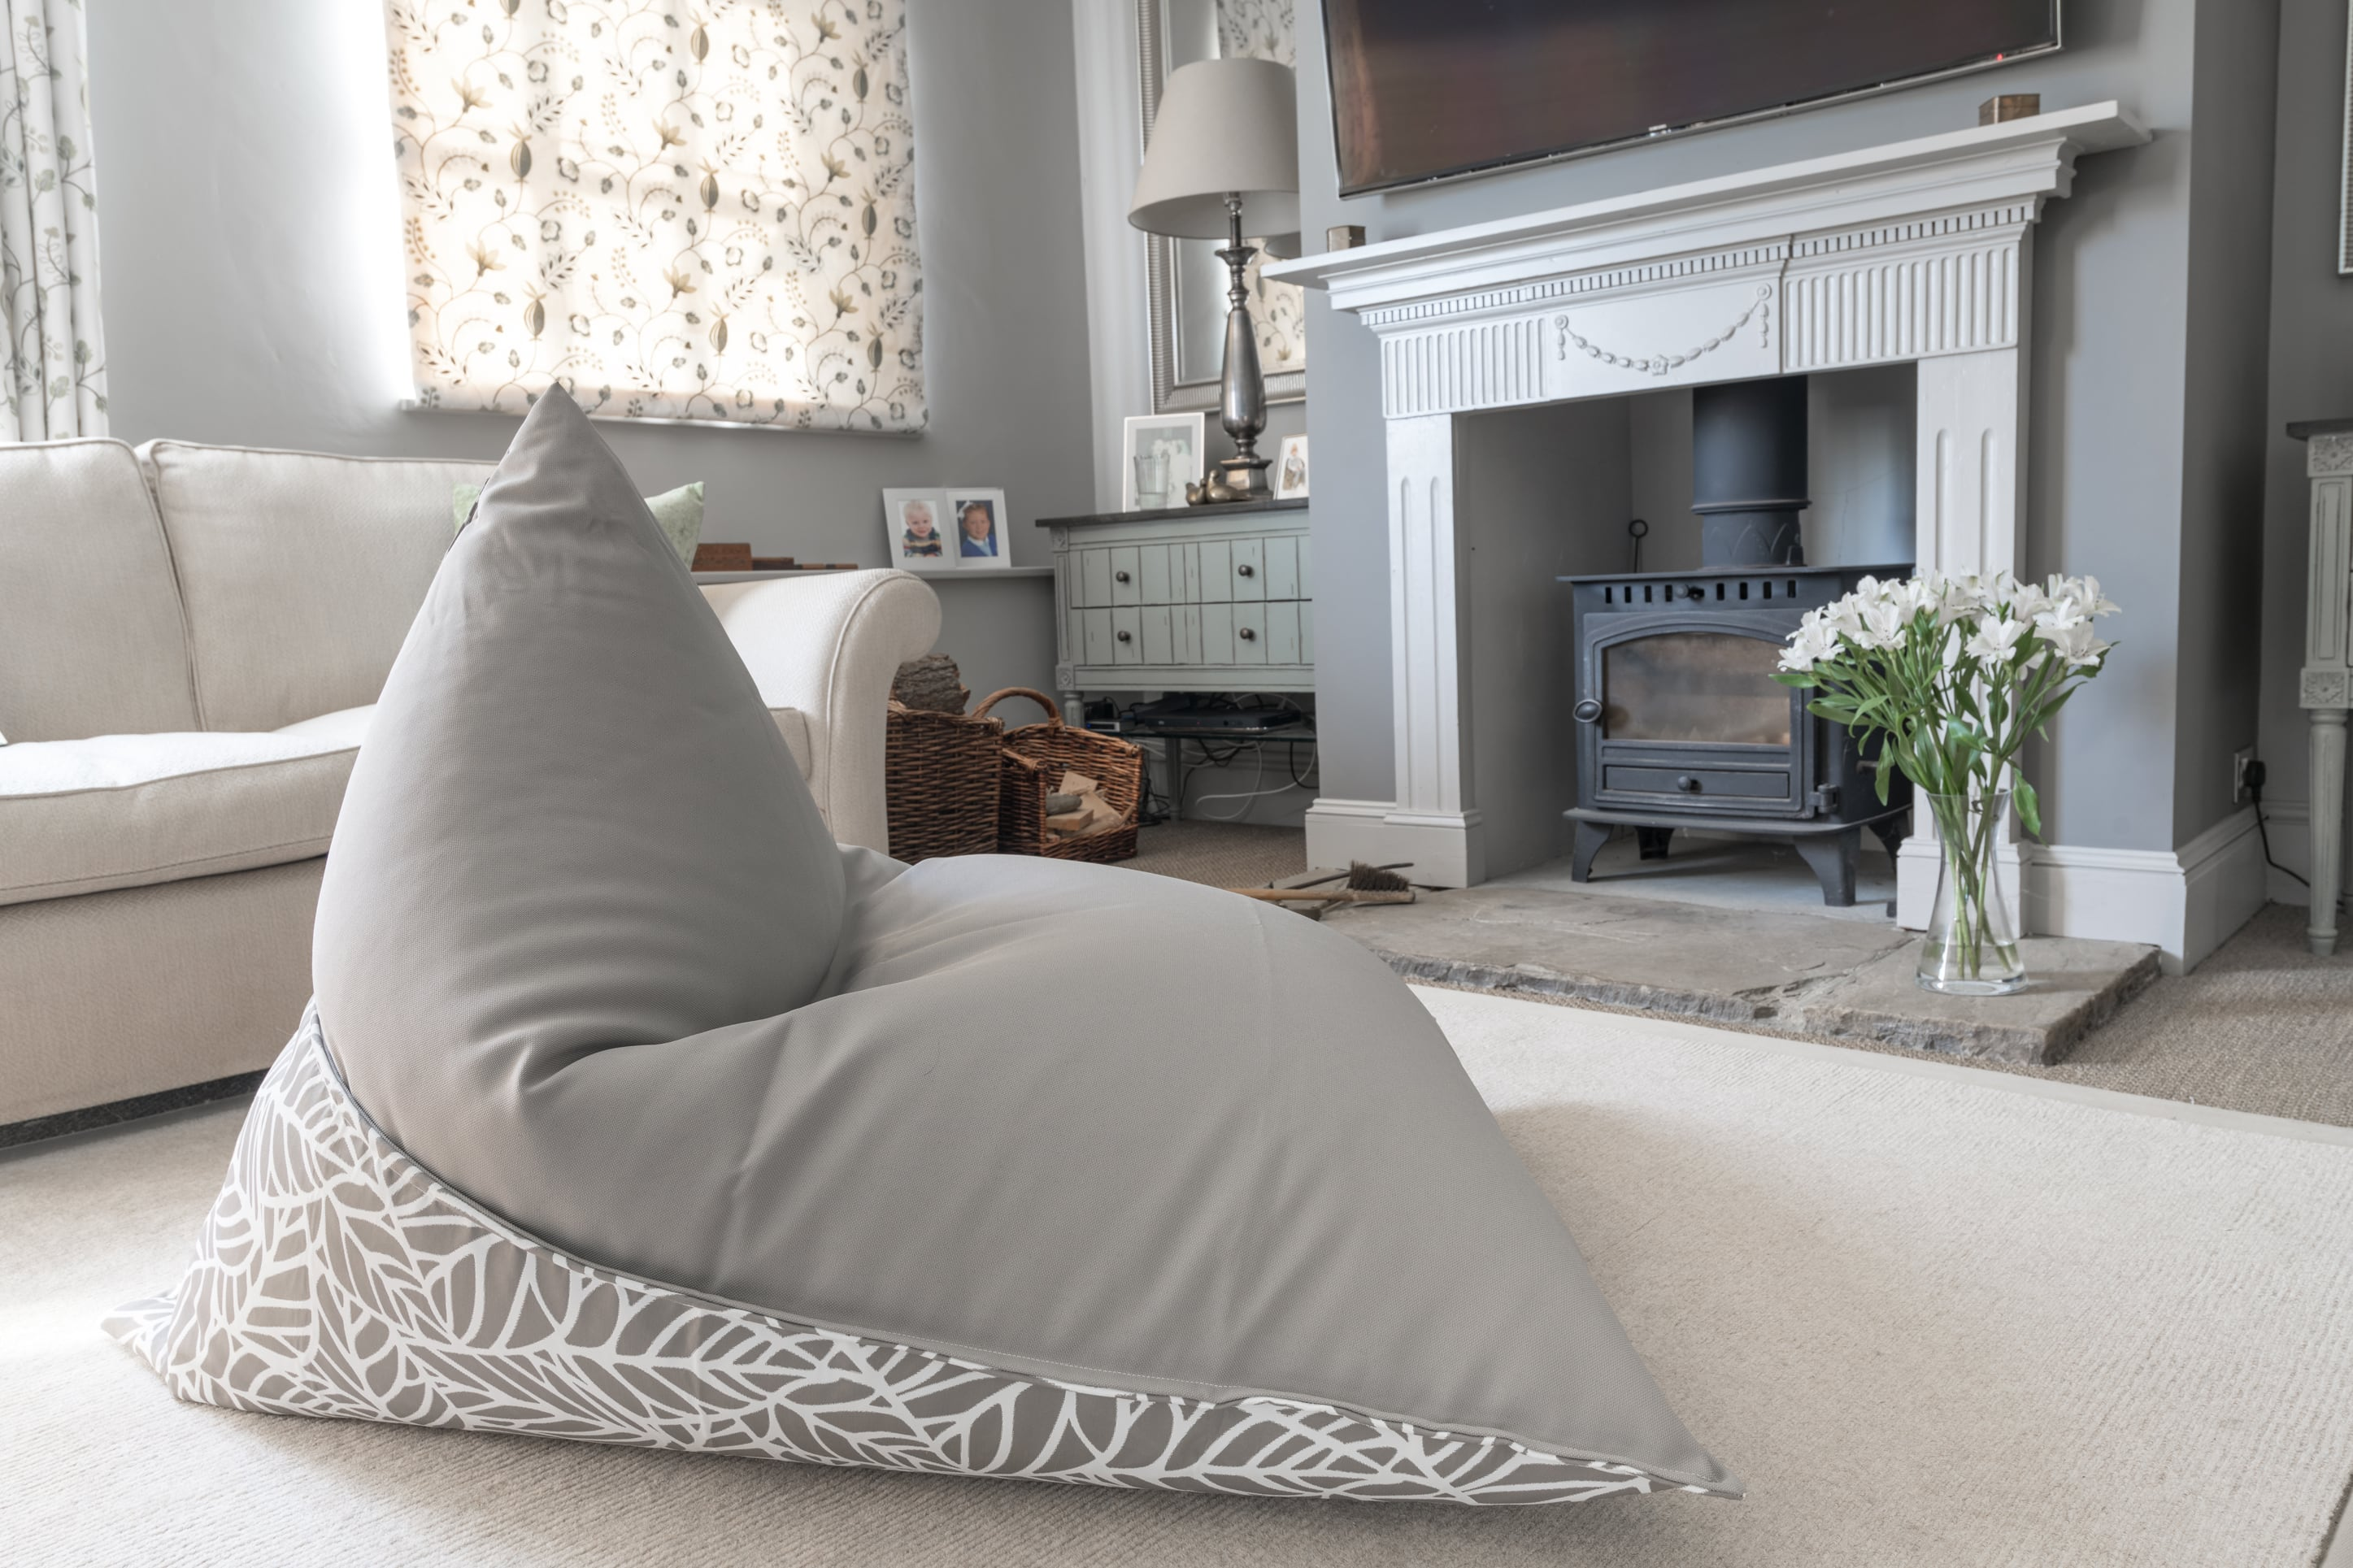 Armadillo Sun bean bag lounger in neutral pumice and white palm pattern indoors by fireplace